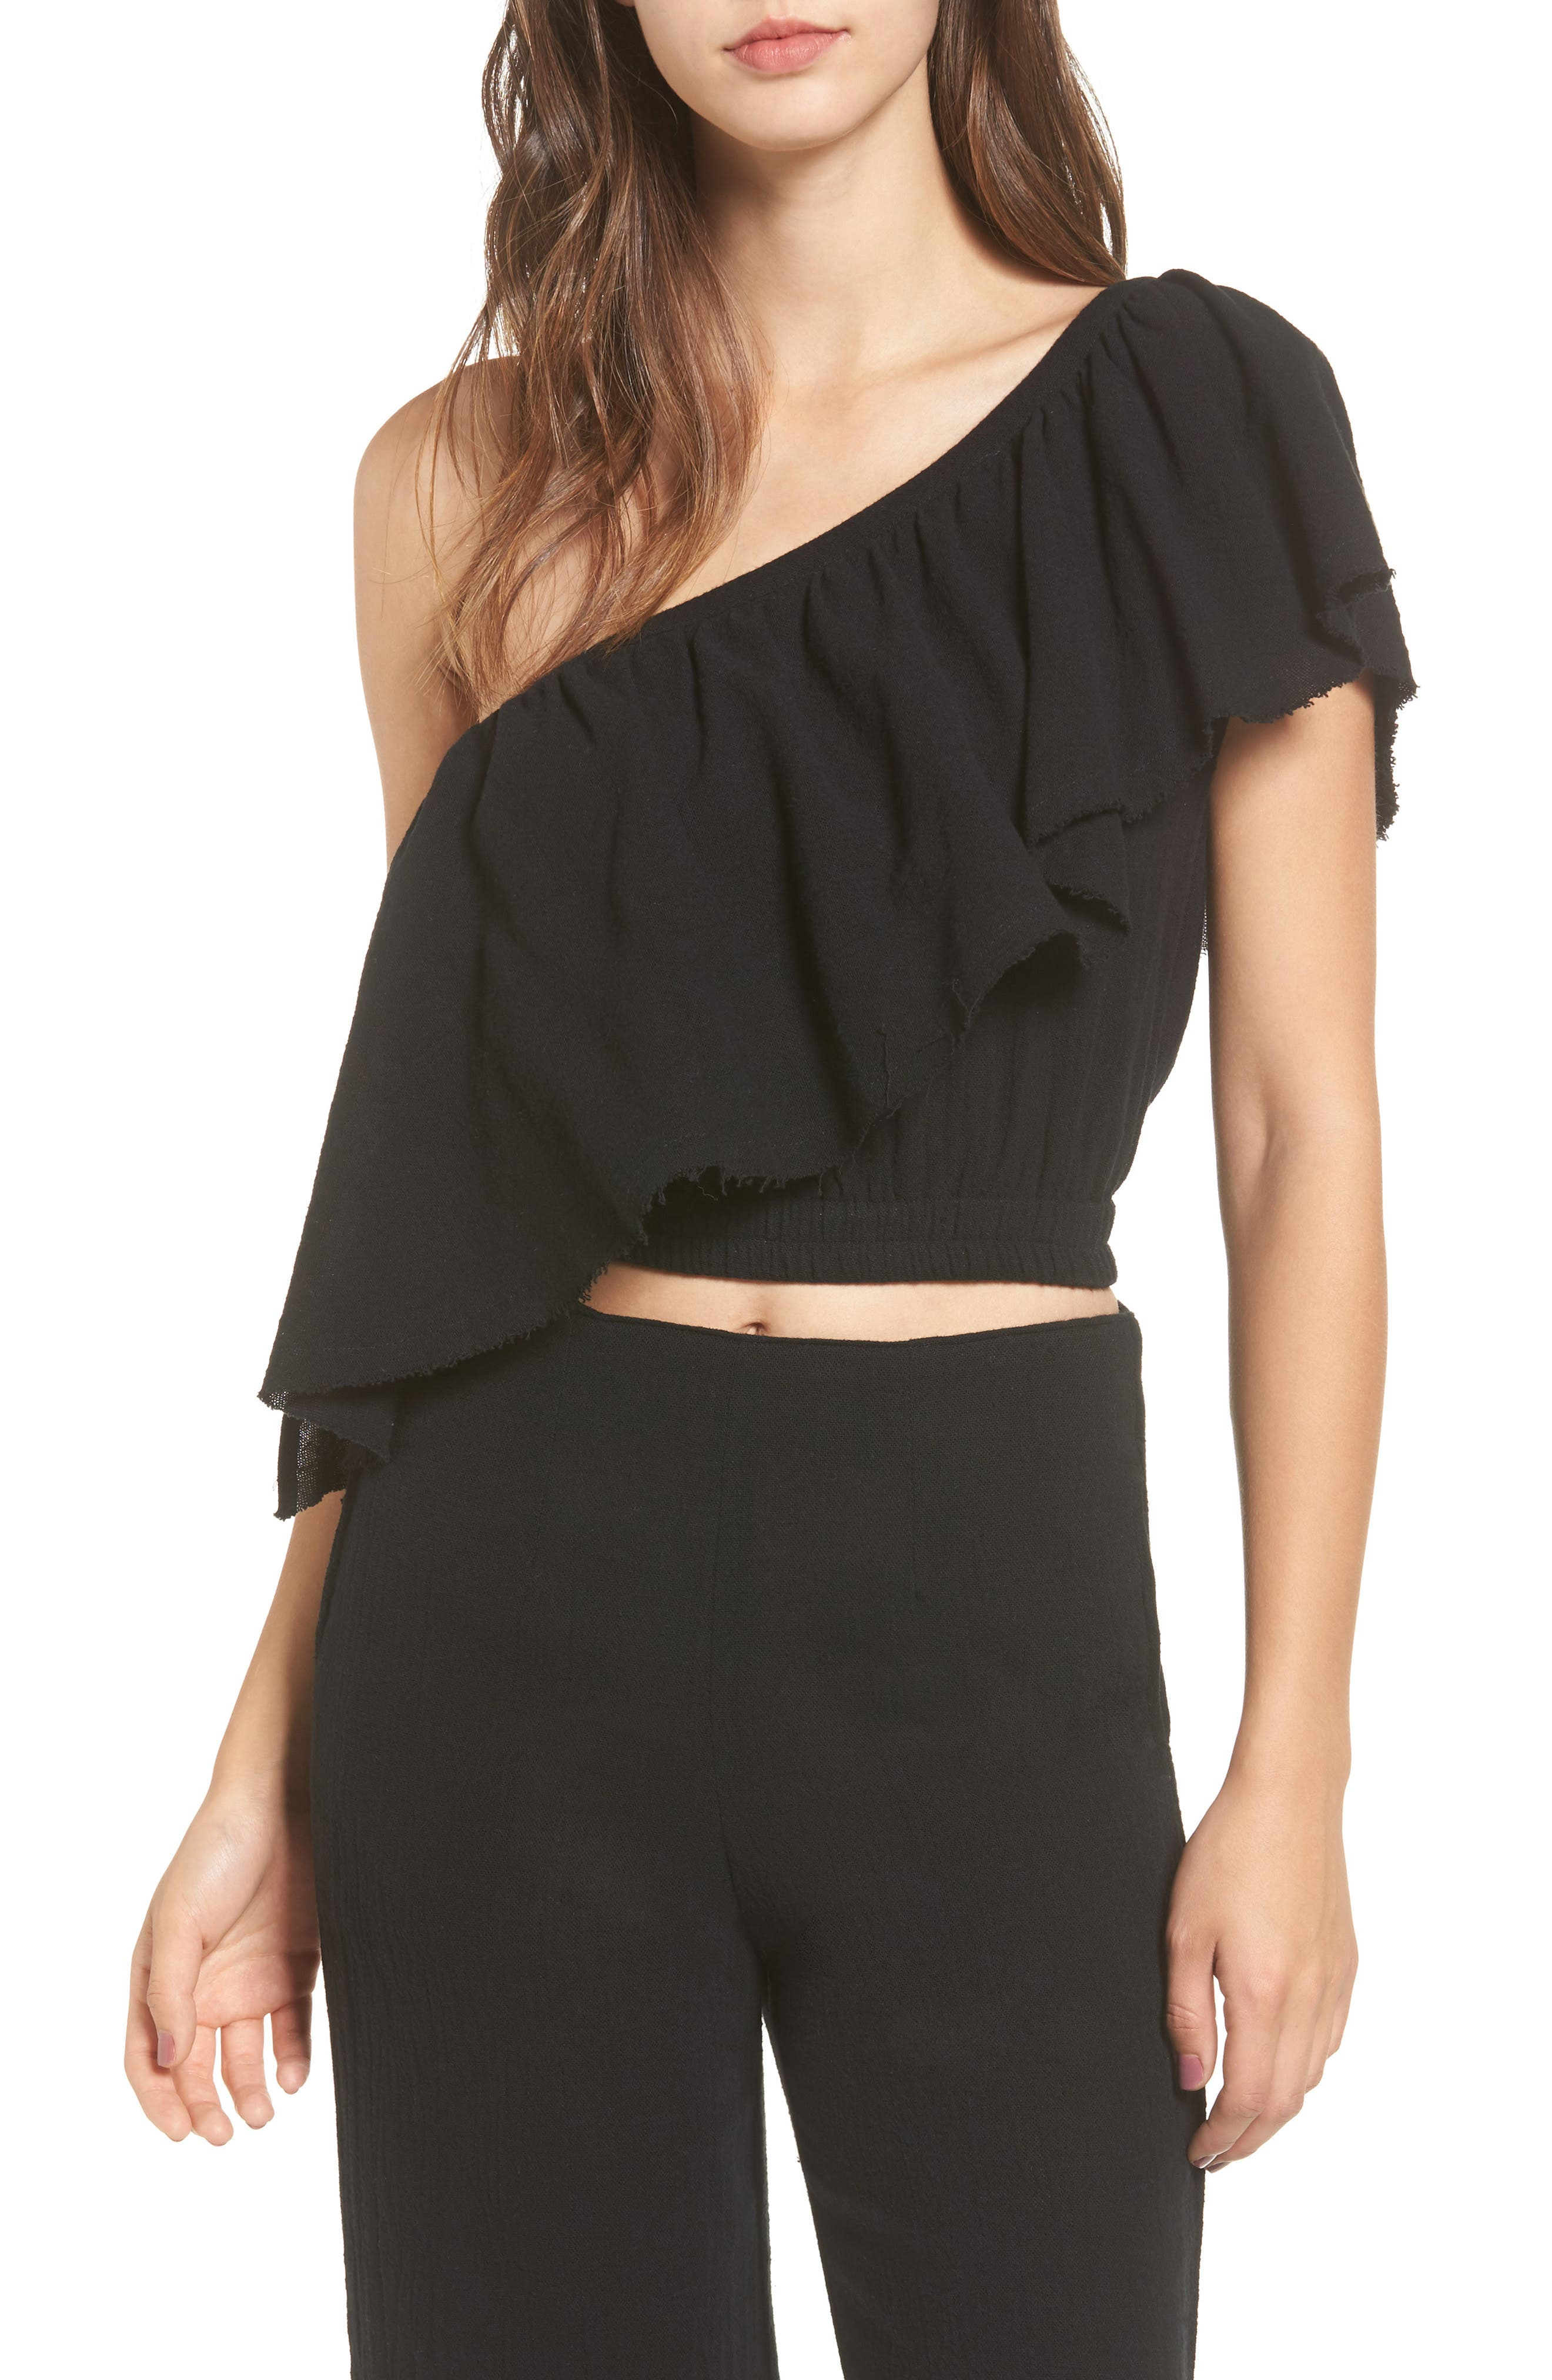 Main Image - FAITHFULL THE BRAND San Andres One-Shoulder Top